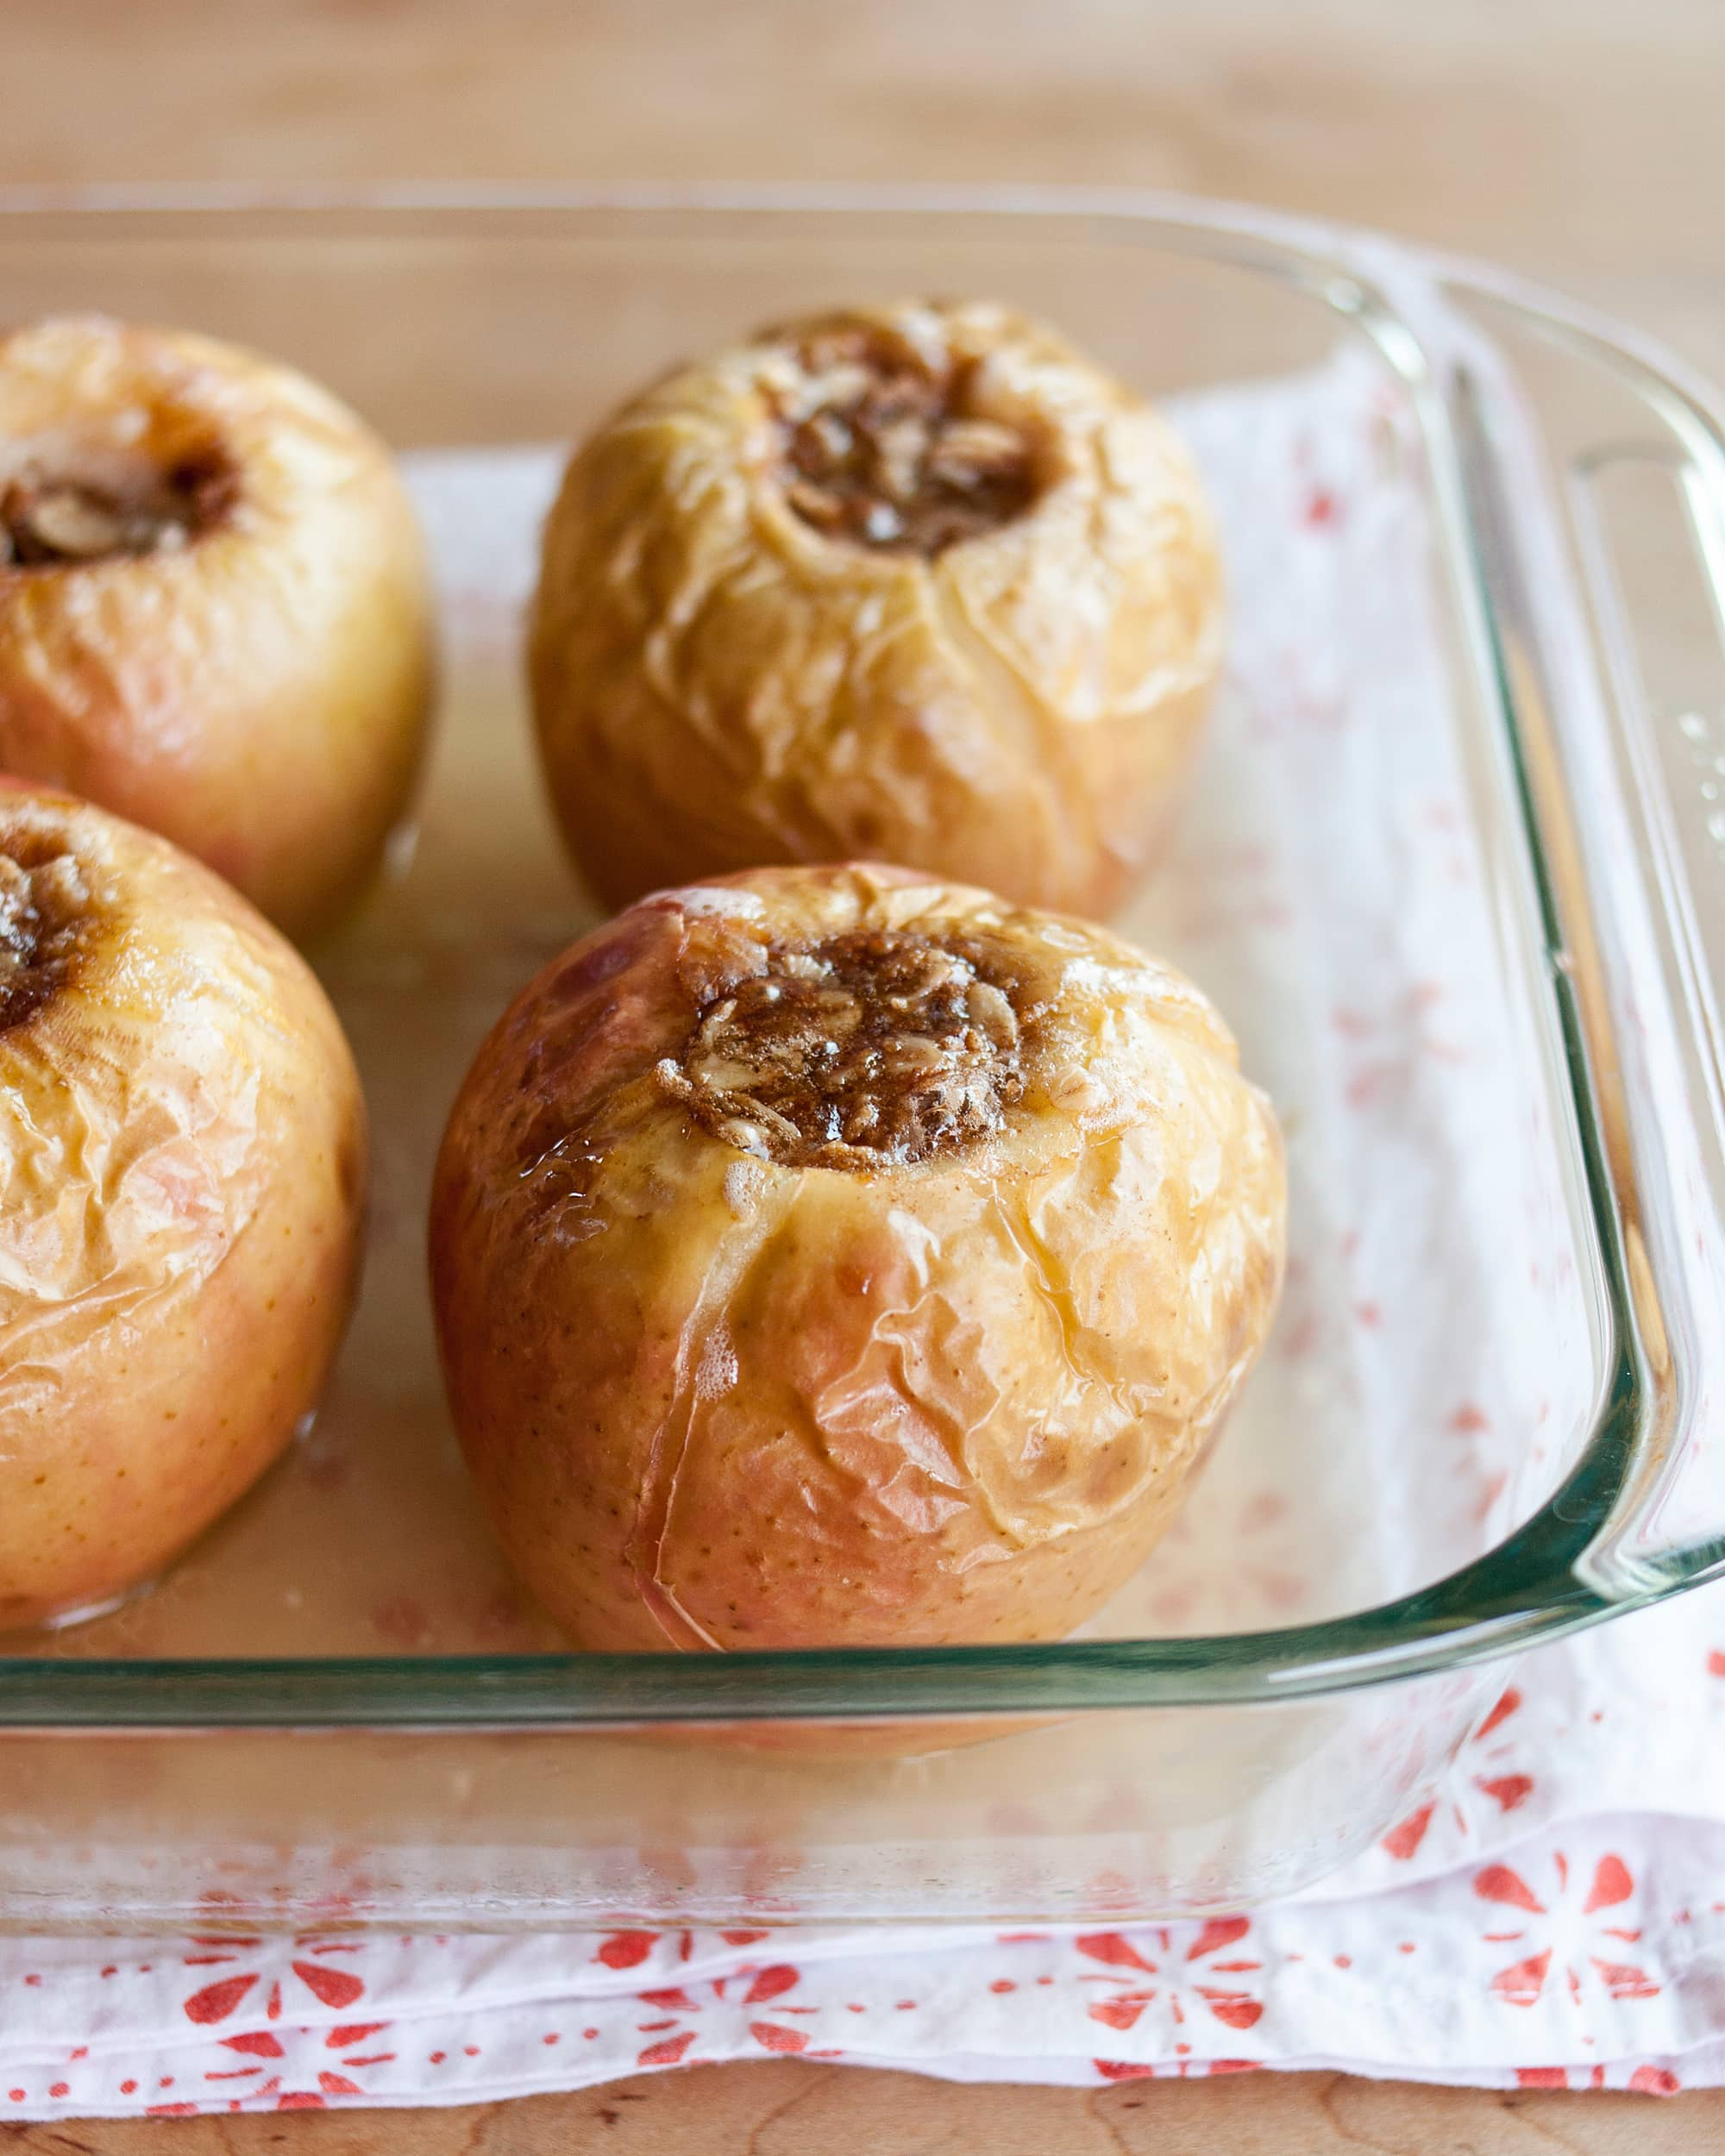 Recipe: Baked Apples Stuffed With Oatmeal & Brown Sugar